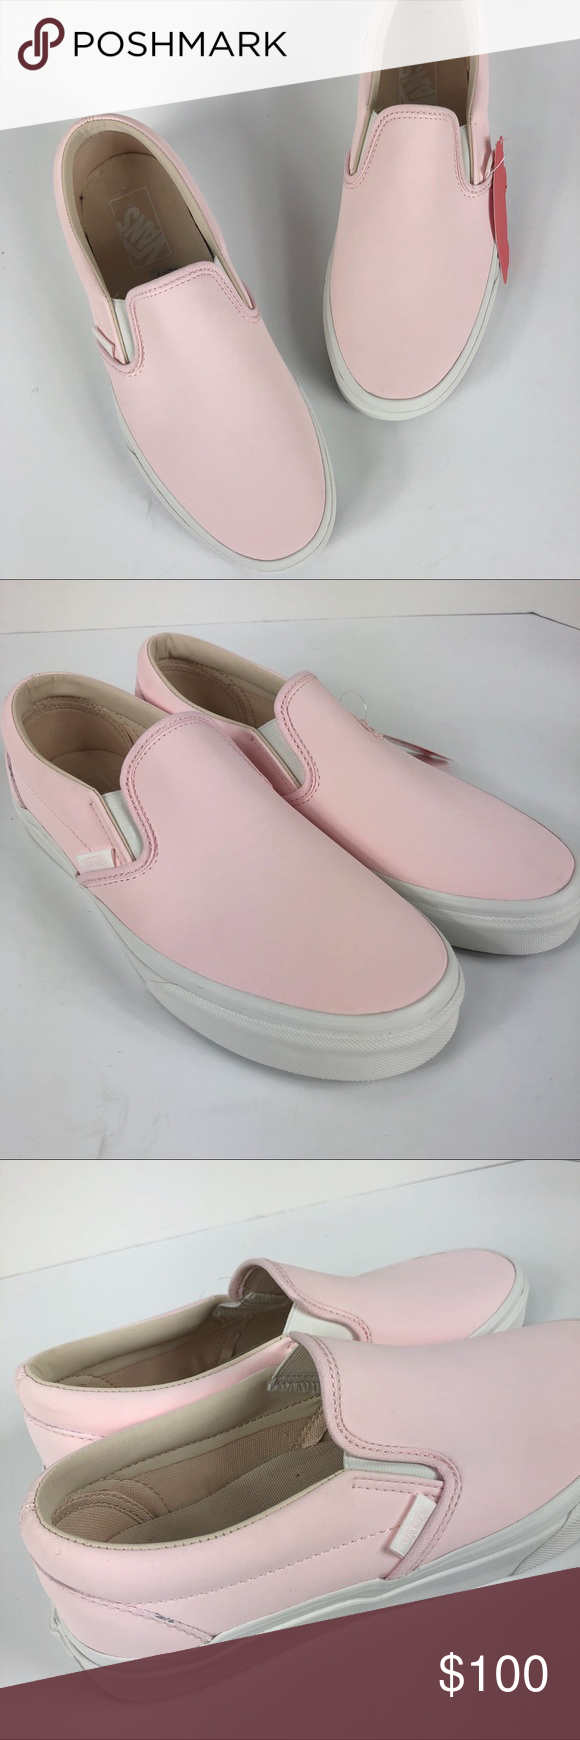 612107f951d2 Vans classic slip on Pink leather M8 W 9.5 Brand new in box Vans classic  slip on in heavenly pink leather. Men s size 8 woman s 9.5 Vans Shoes  Sneakers